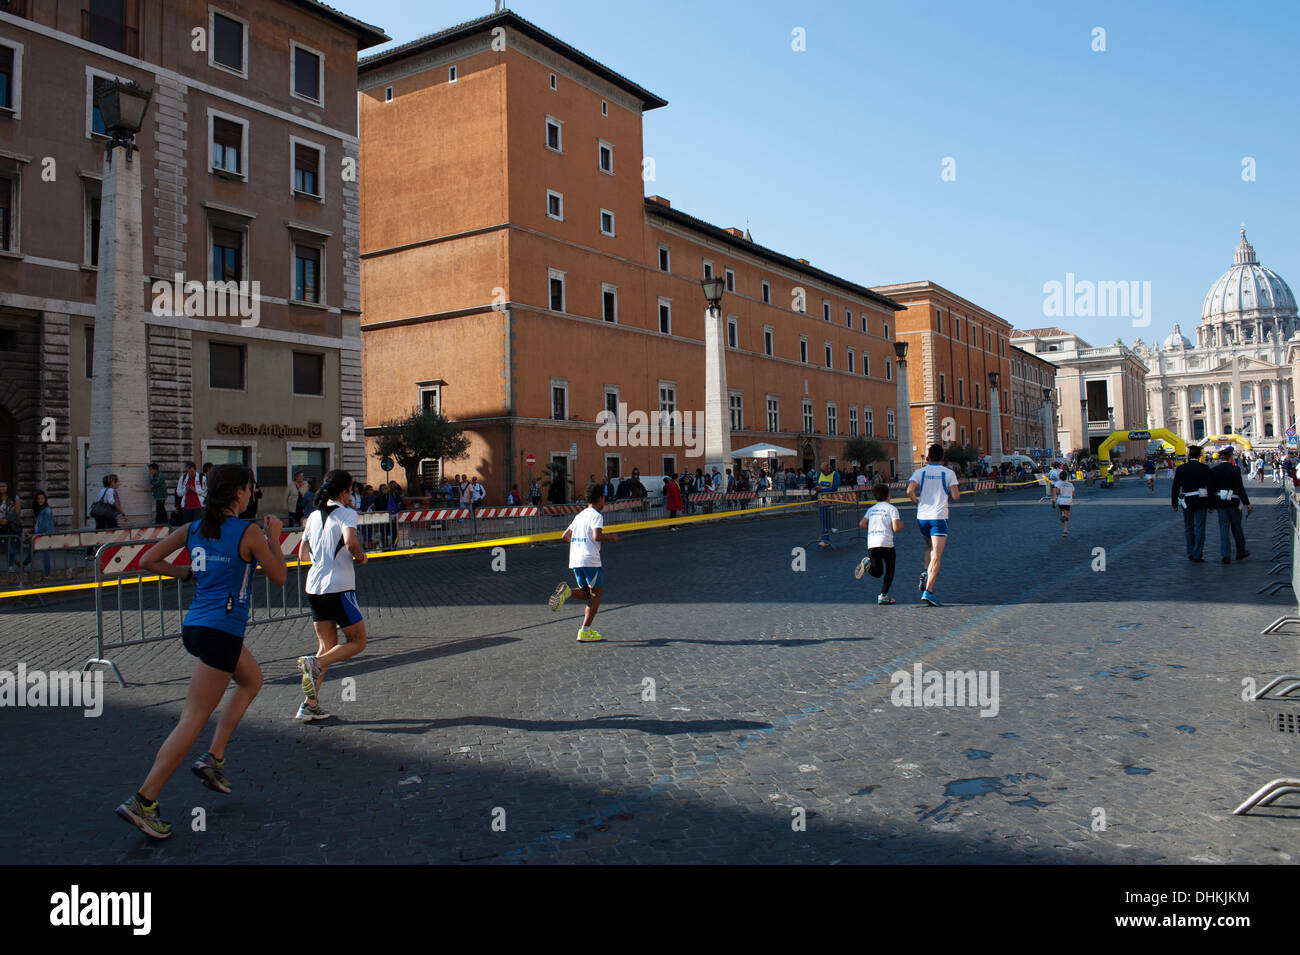 Athletes to the finishing straight in Vatican city race - Stock Image